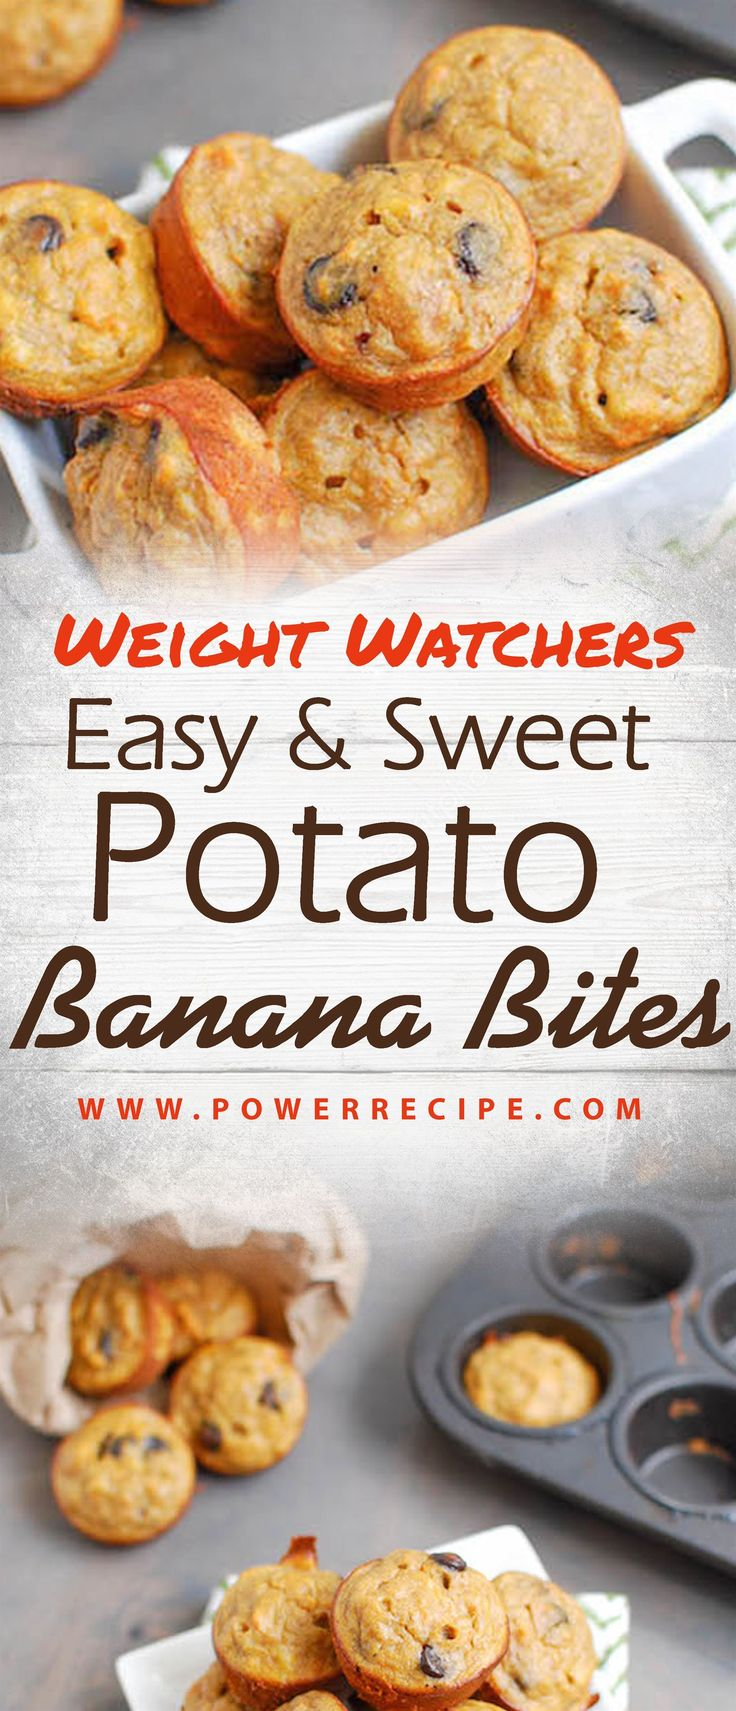 Weight Watchers Easy & Sweet Potato Banana Bites!!! - All about Your Power Recip...